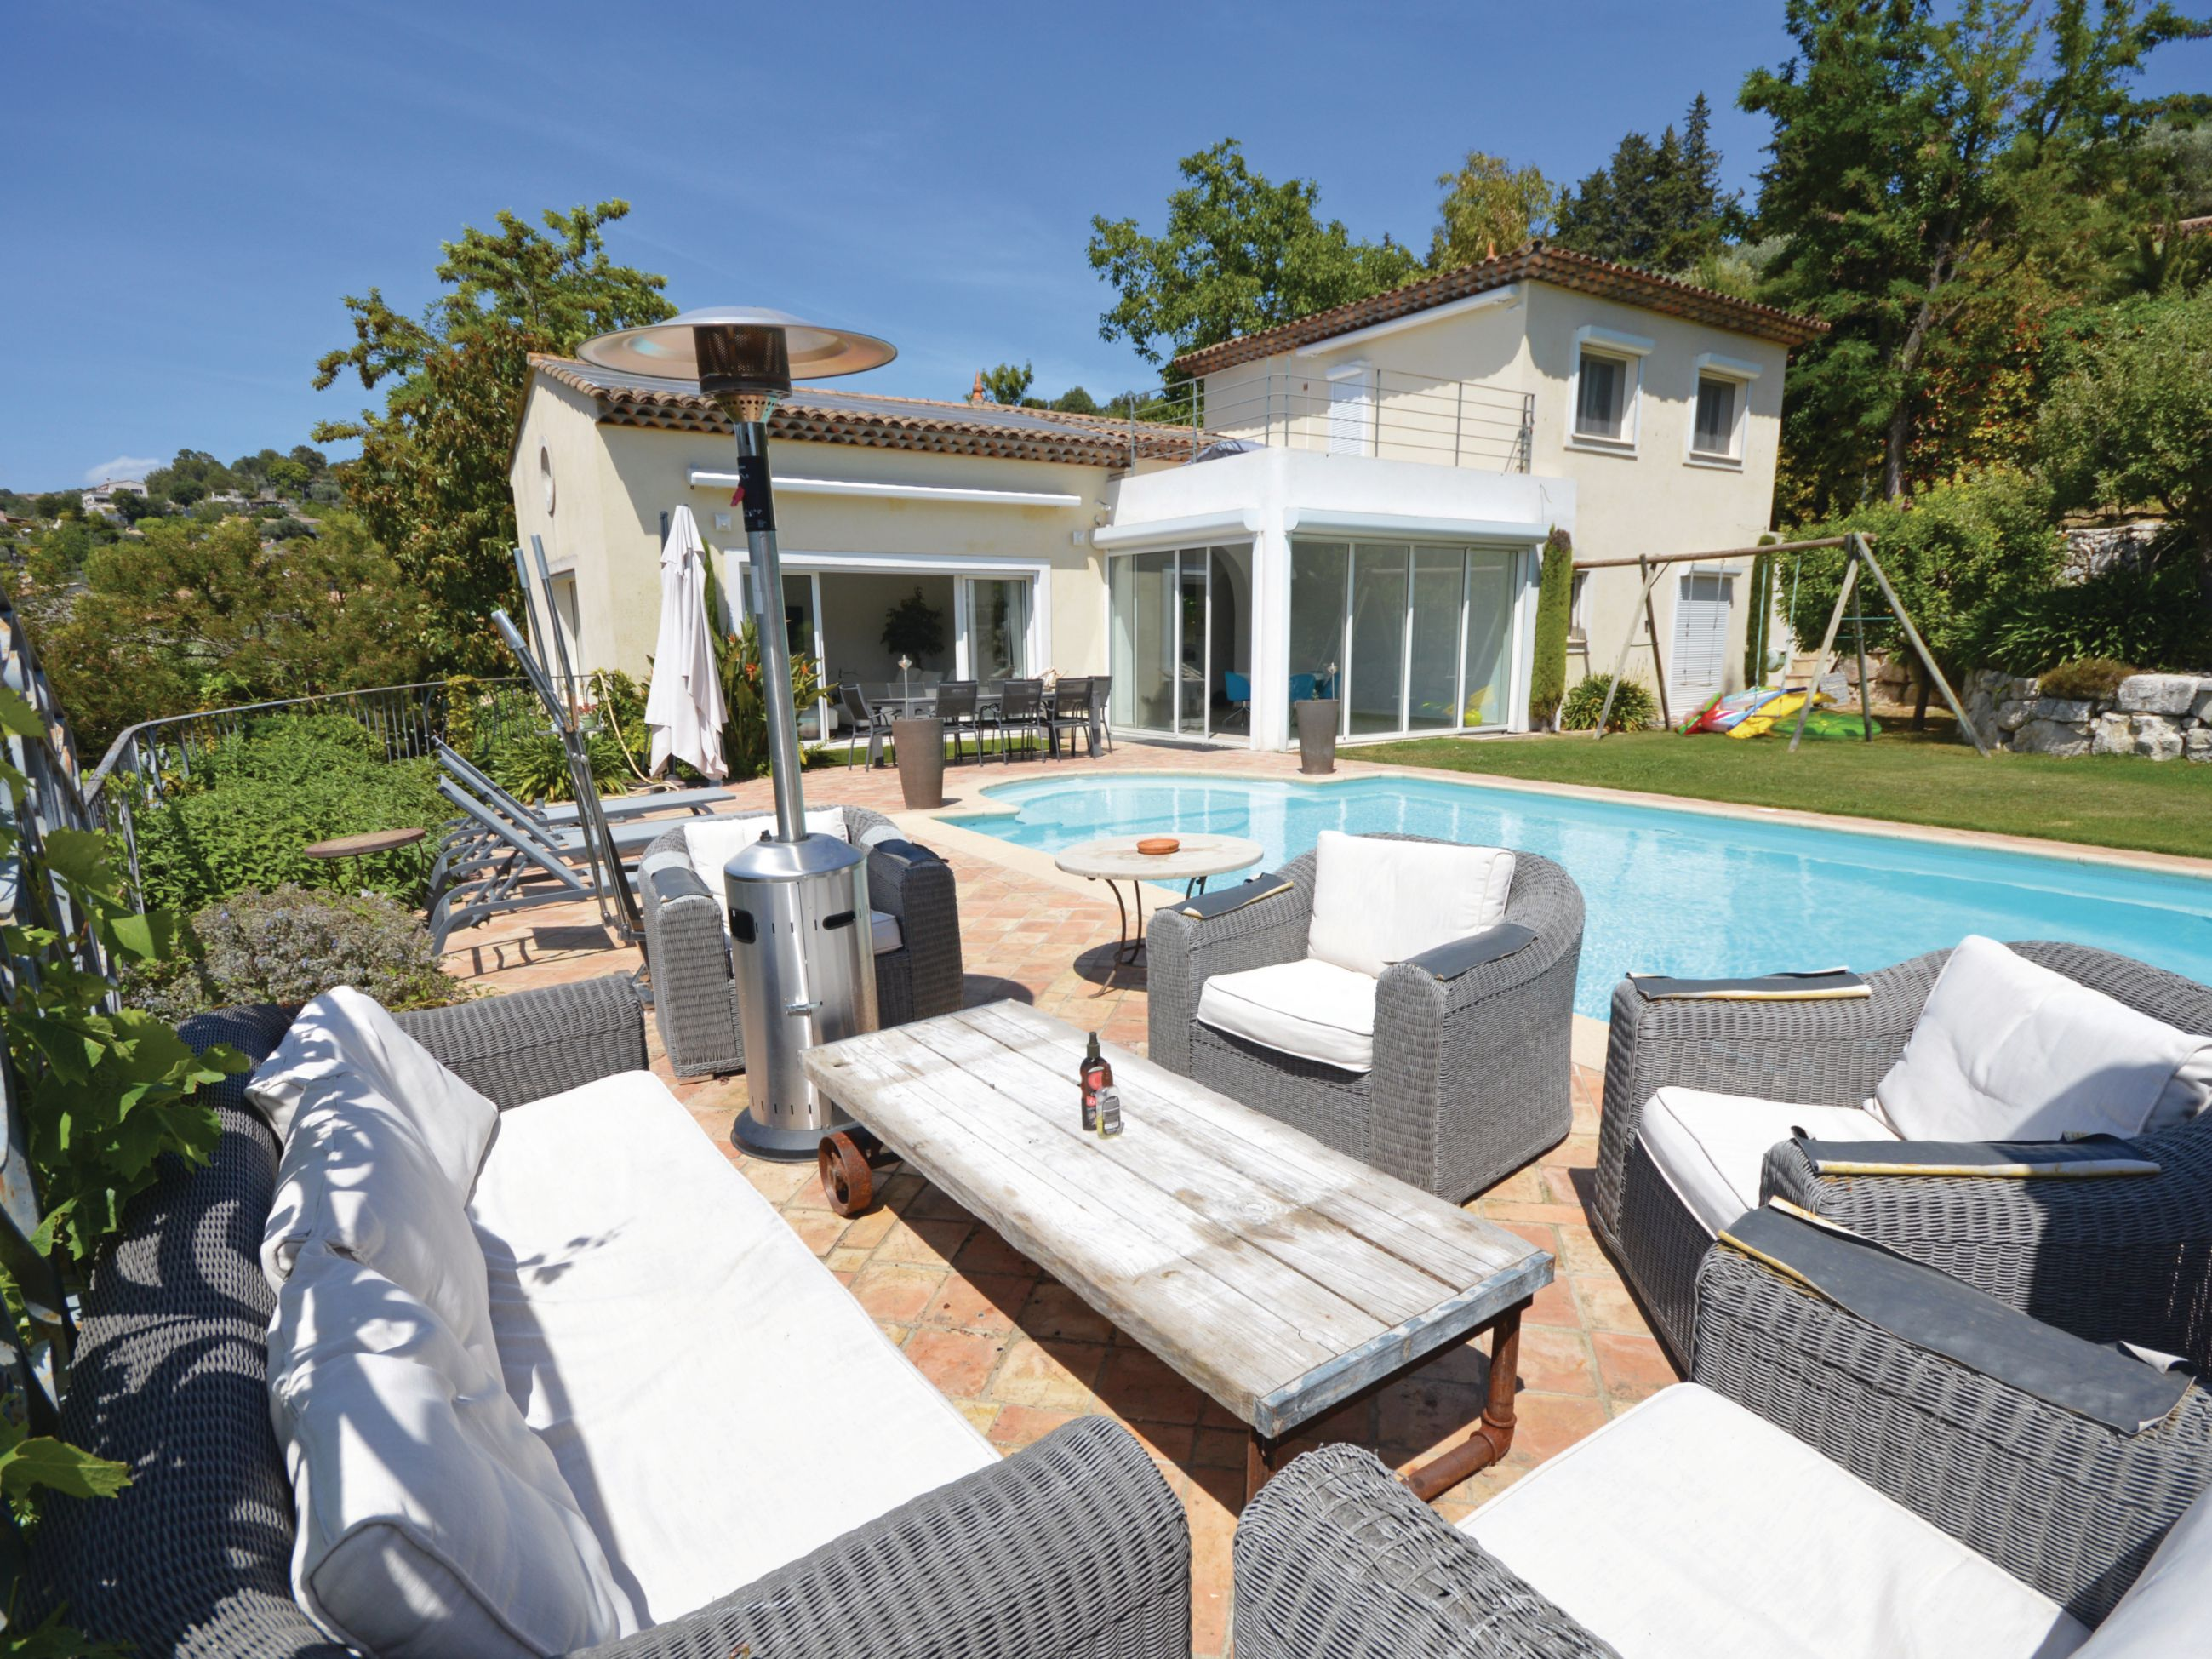 A Sumptuous Holiday Home With Air Conditioning And Beautiful Private Swimming Pool